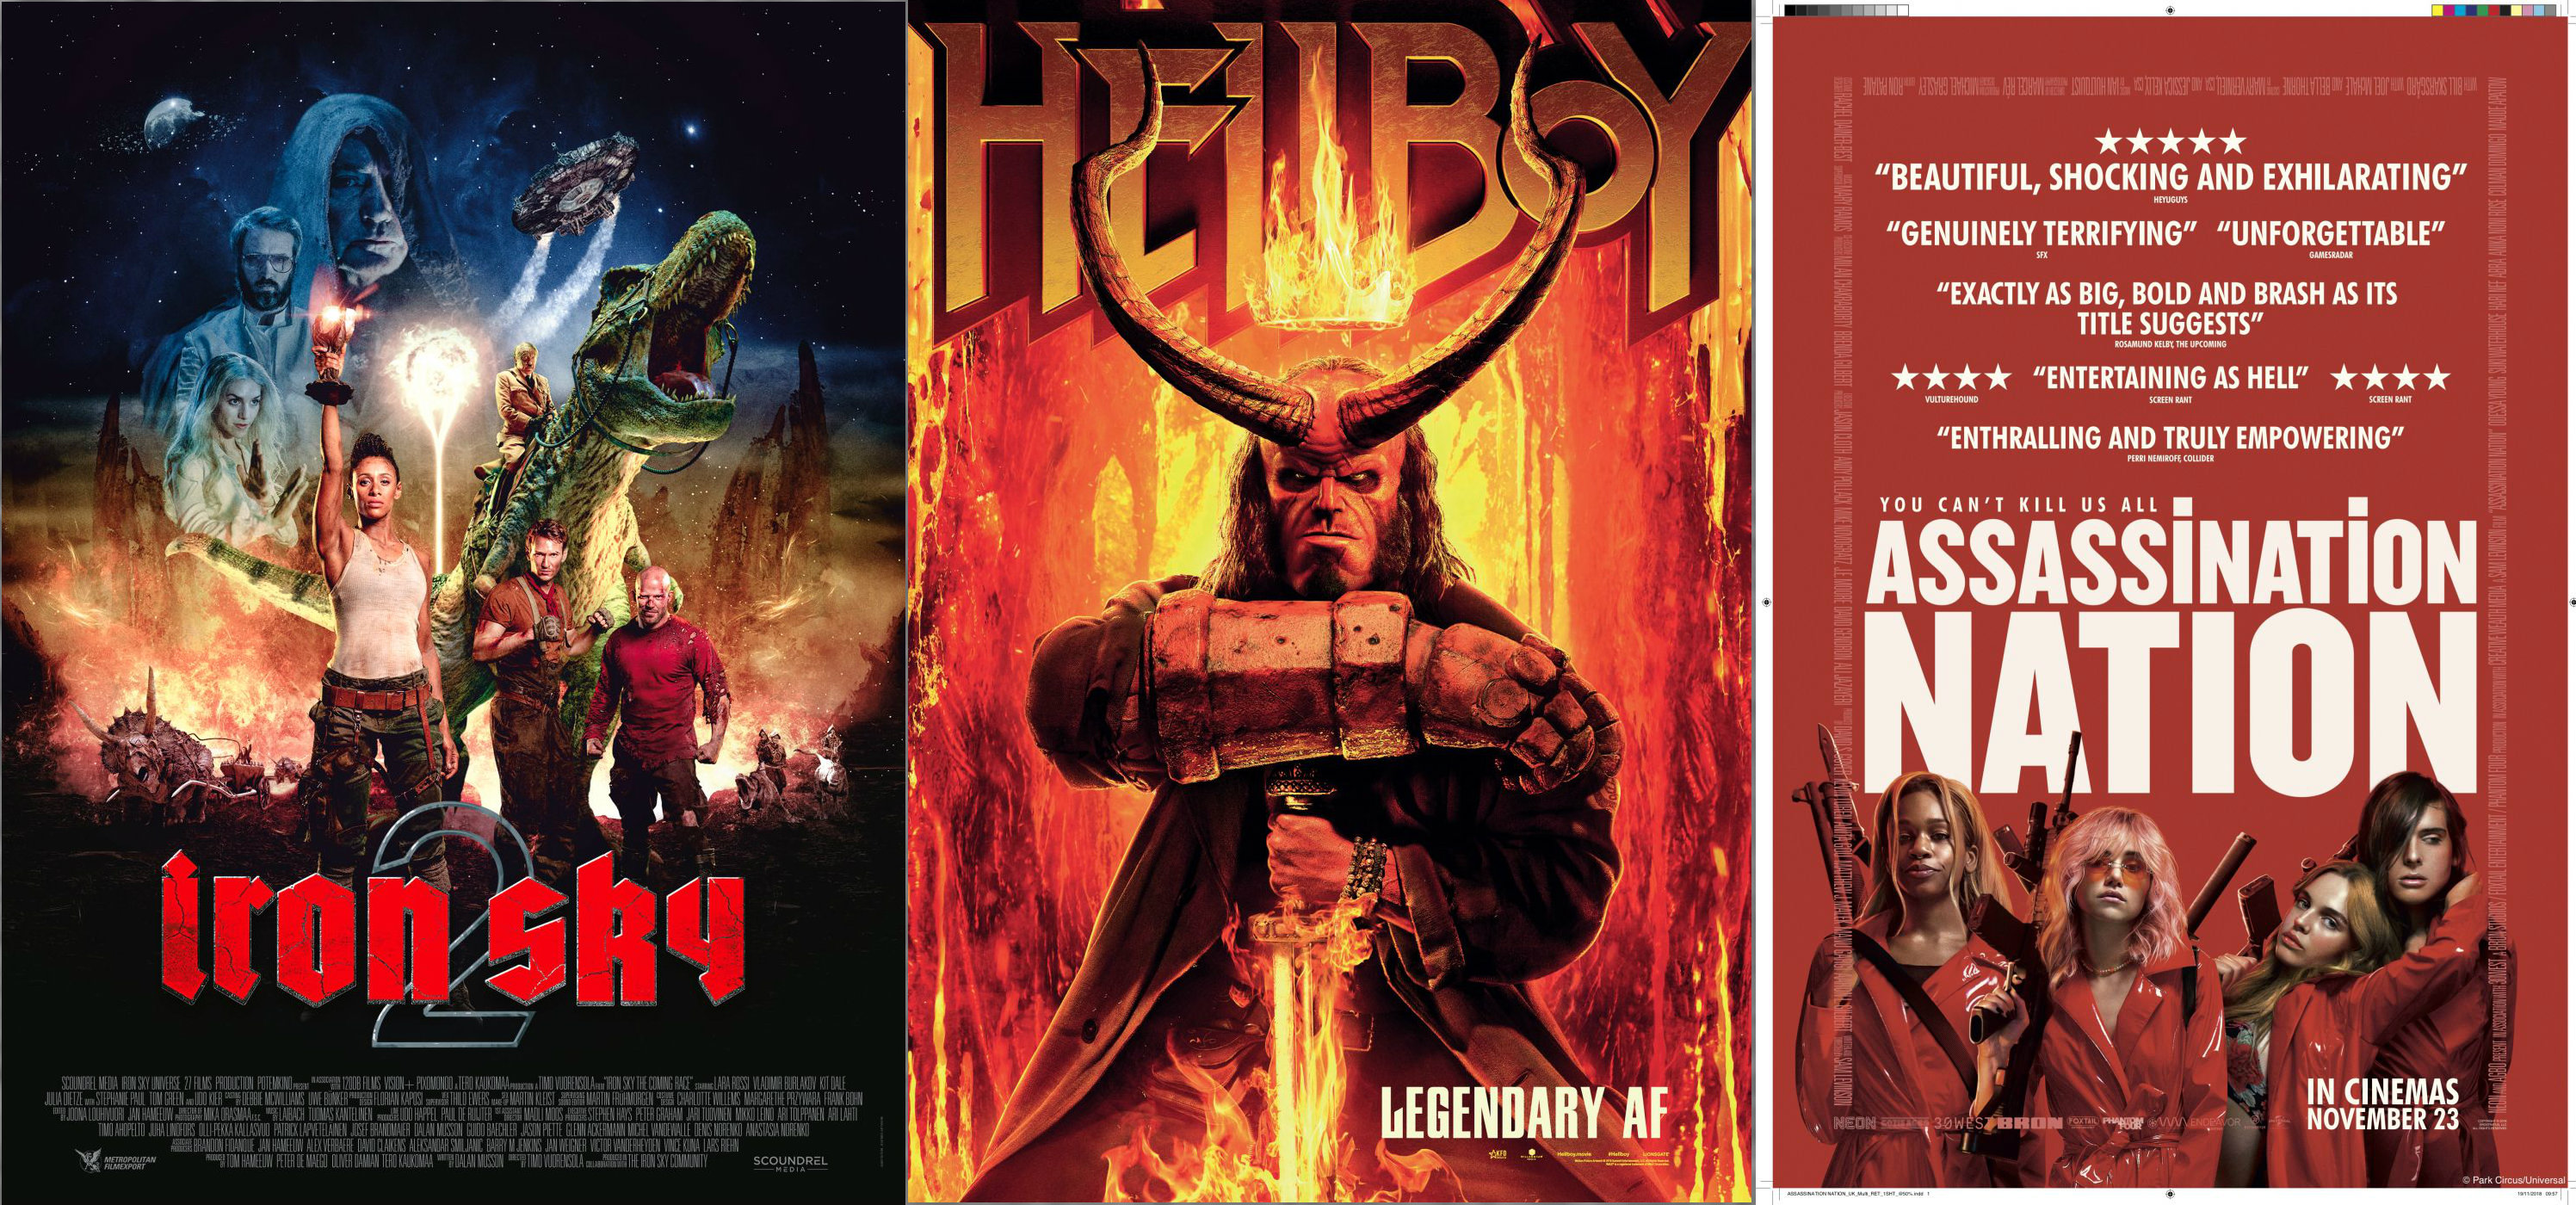 BIFFF_2019_IRON_SKY_2_HELLBOY_ASSINATION_NATION.jpg